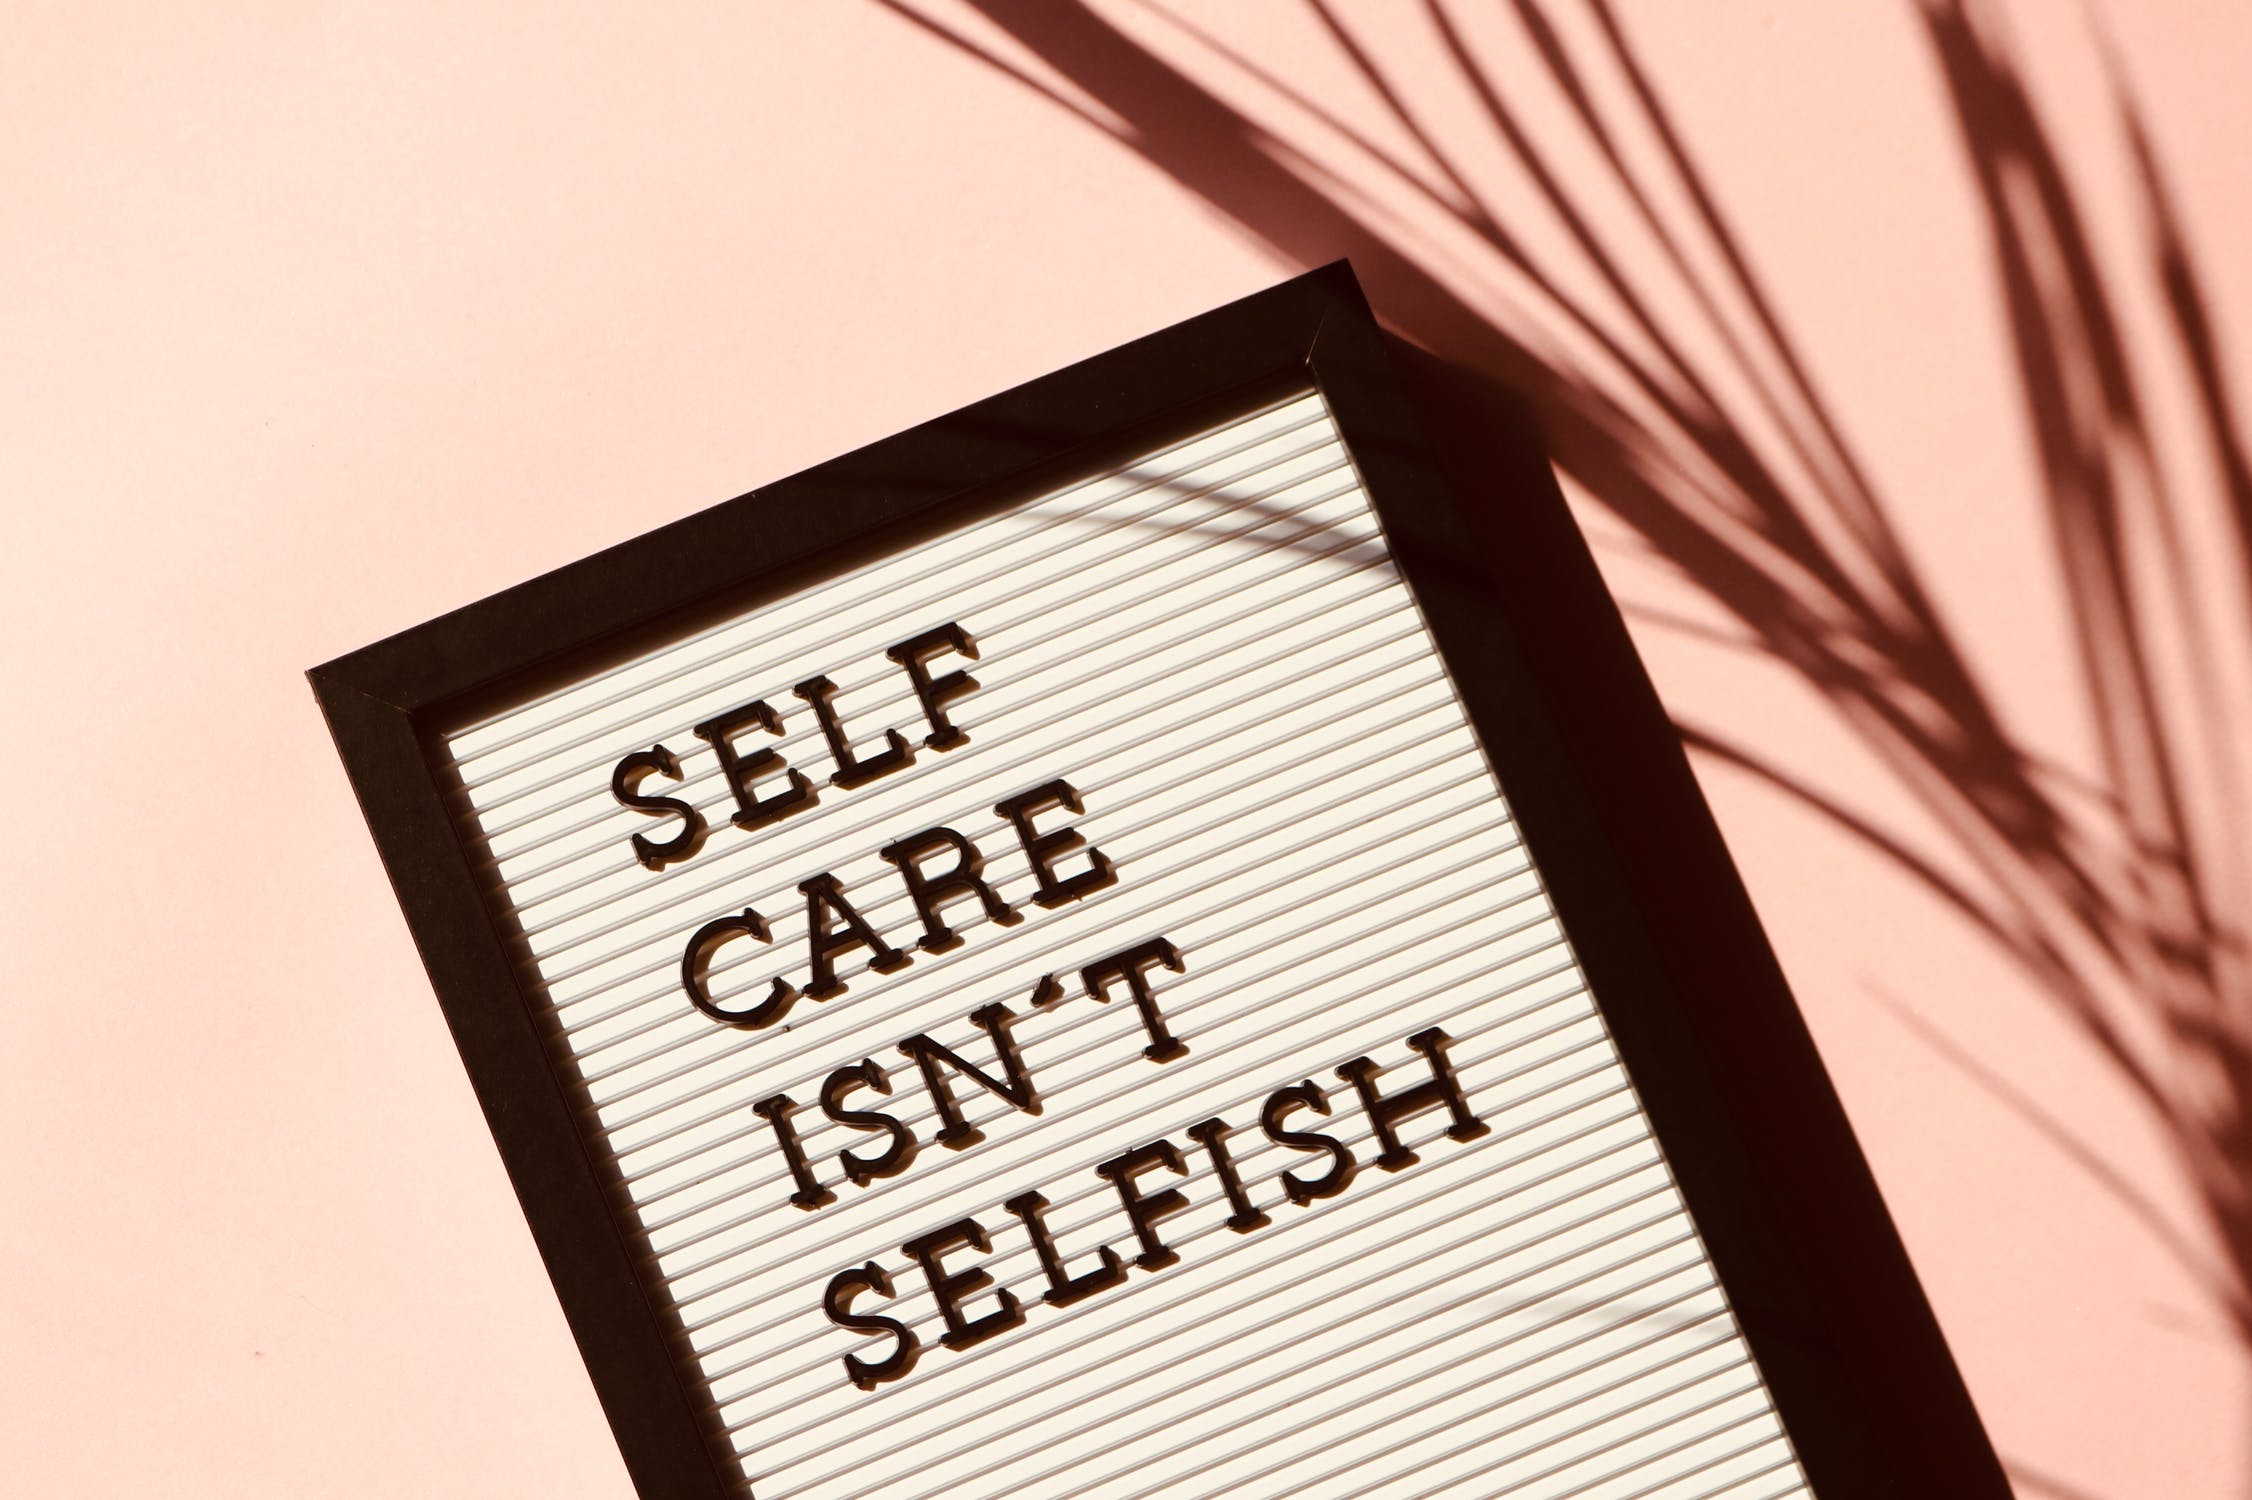 A picture of a sign that says 'Self-care isn't selfish'